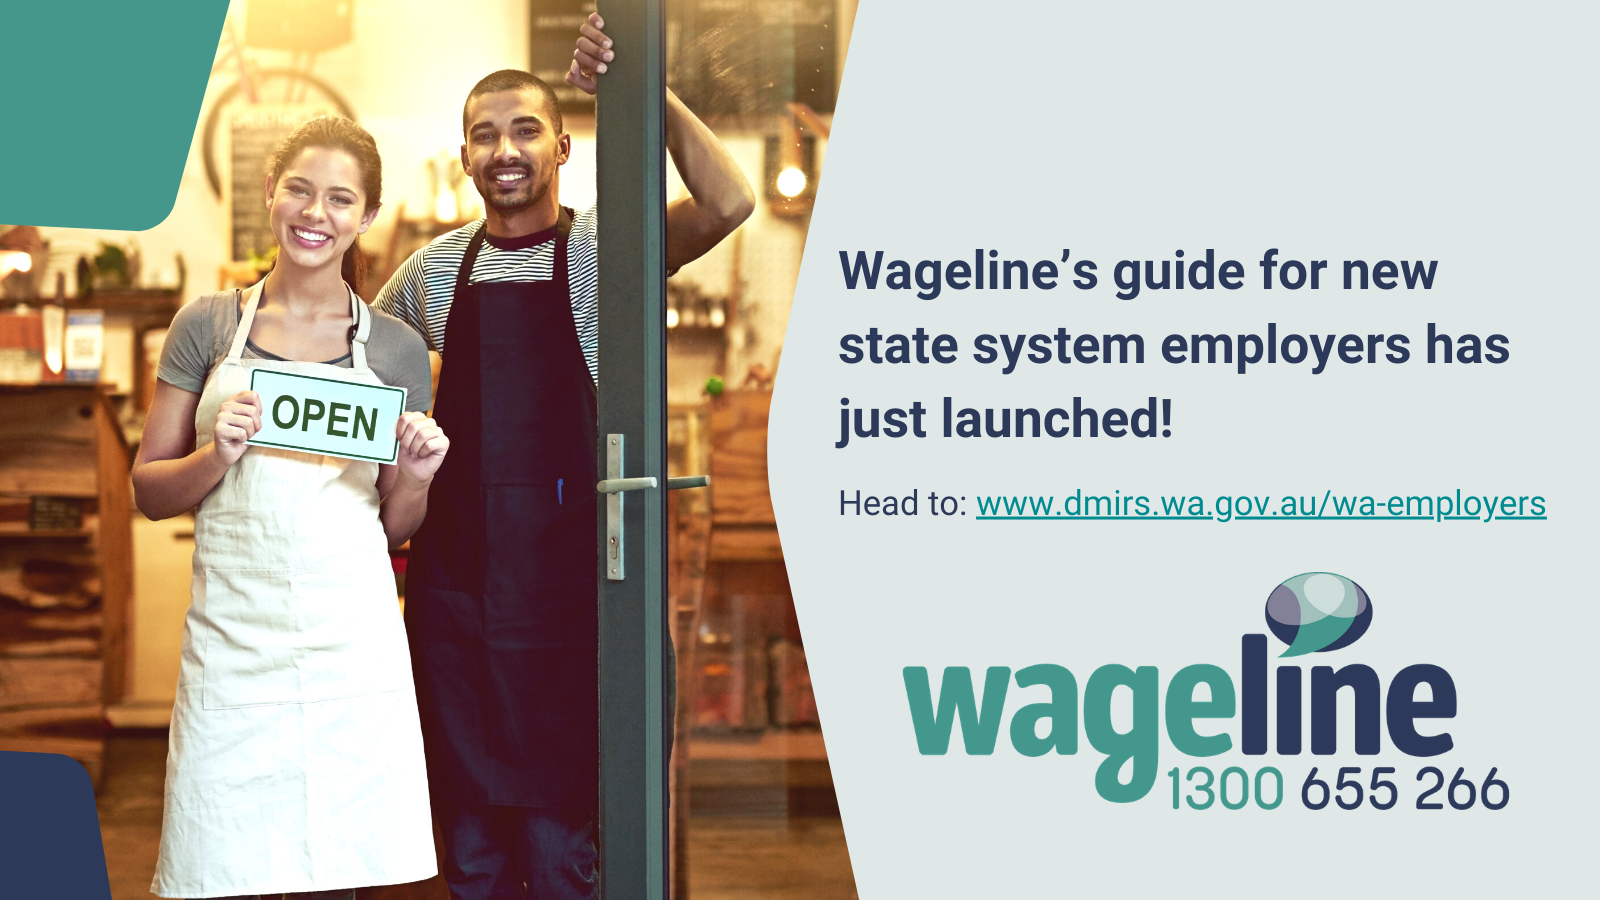 Guide for new state system employers